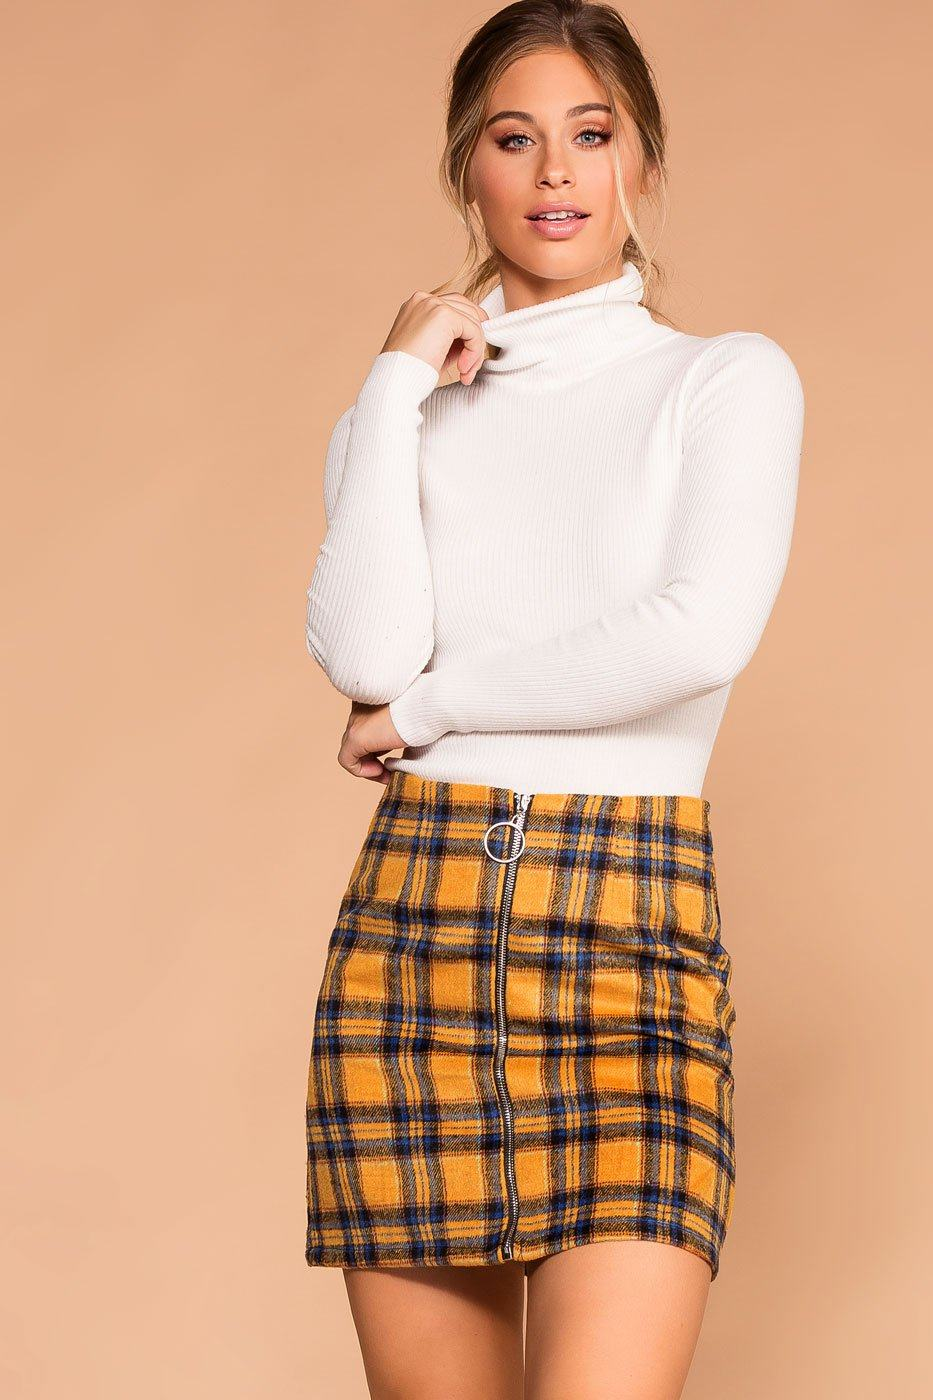 Stockton Mustard Plaid Skirt | Shop Priceless